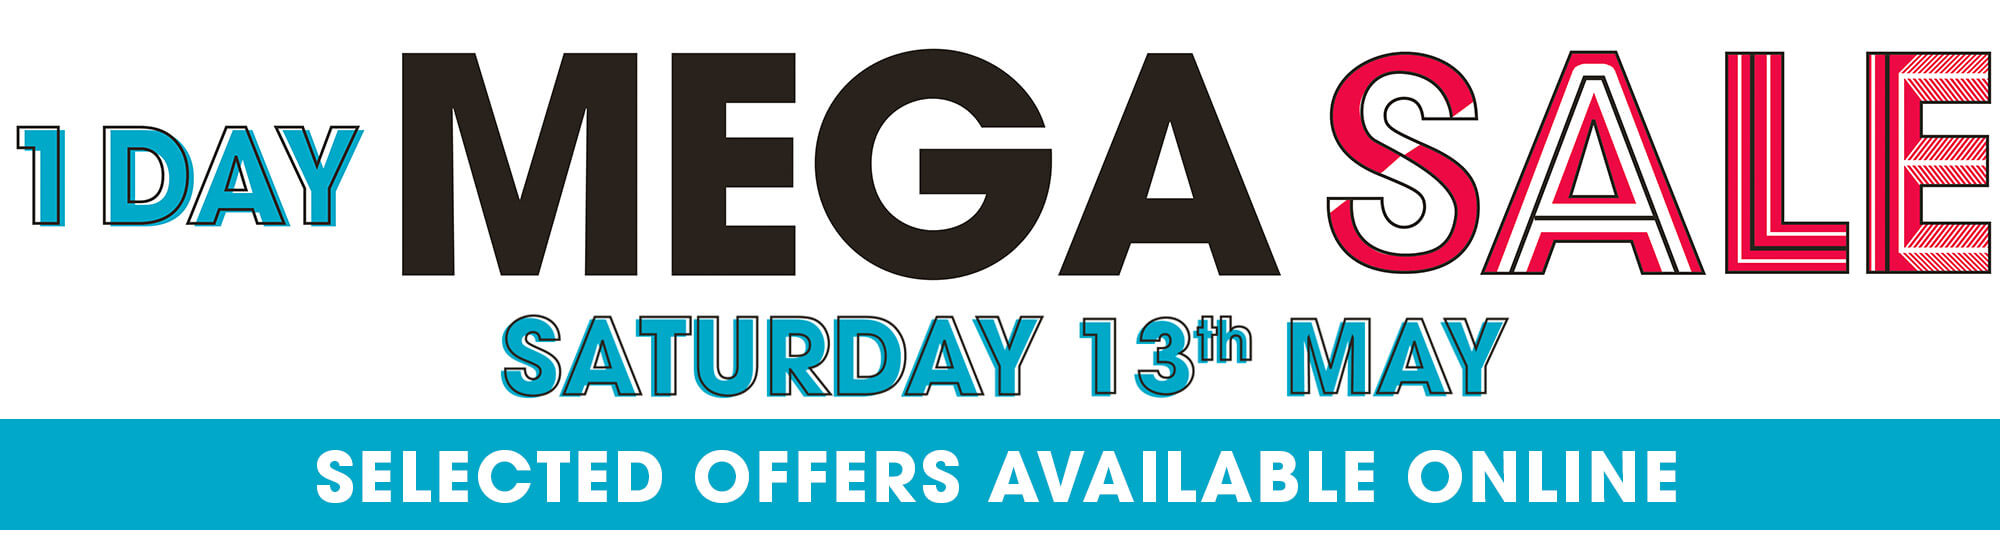 1 day mega sale